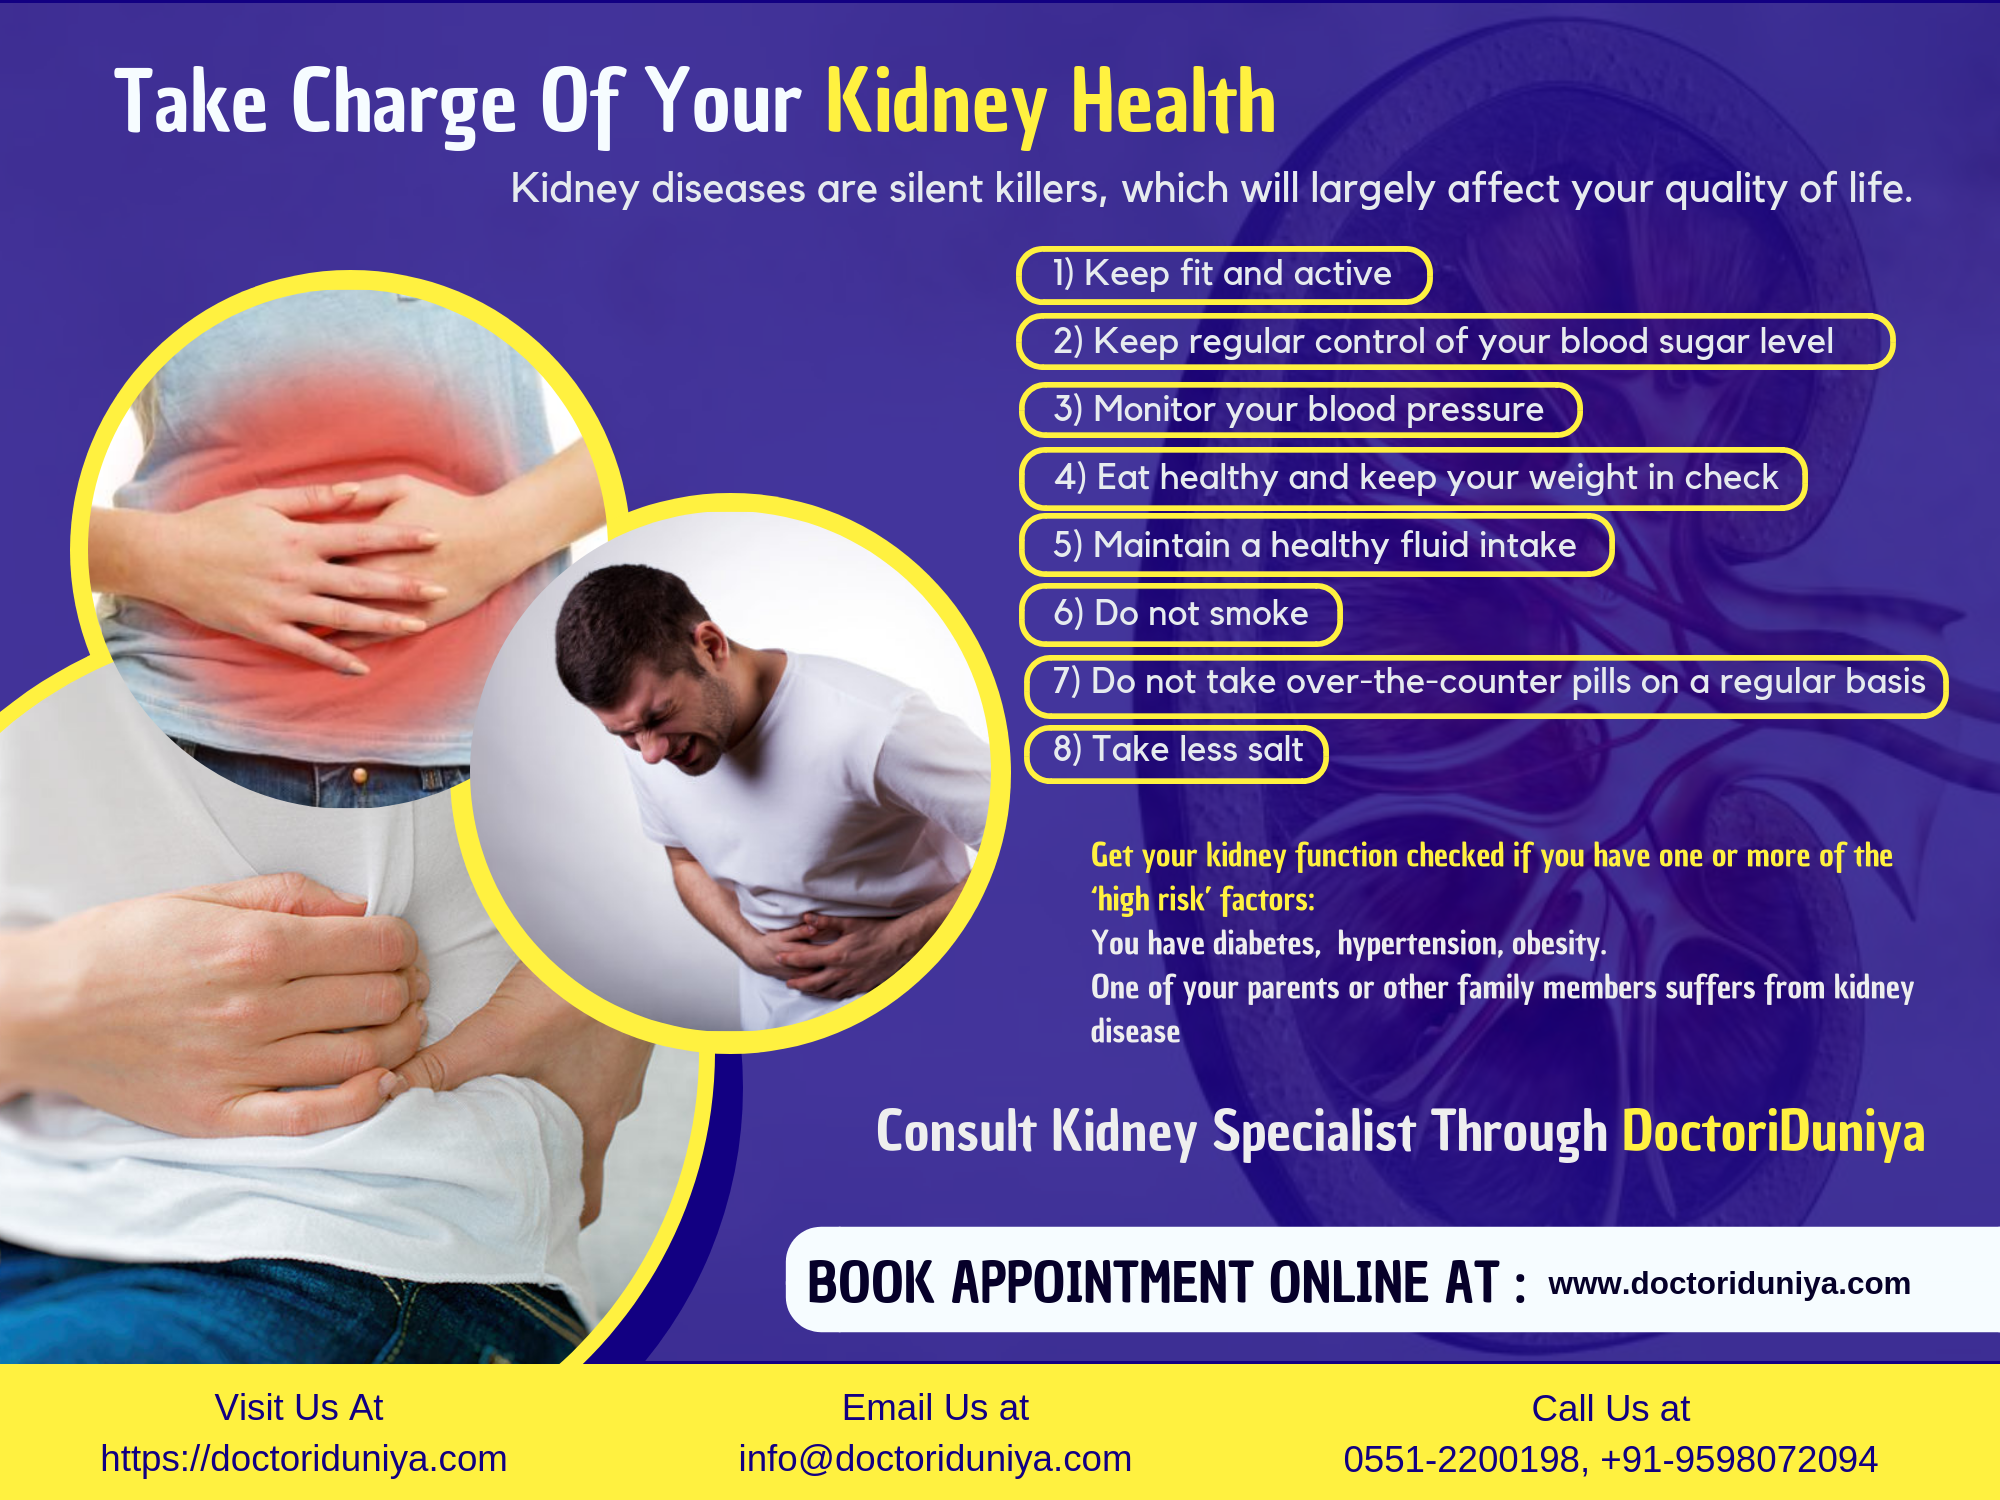 When A Kidney Stone Feels Like Boulder Take Immediate Appointment Of Urologist Book Top Urologist App Urologists Book Online Appointments Online Consultation